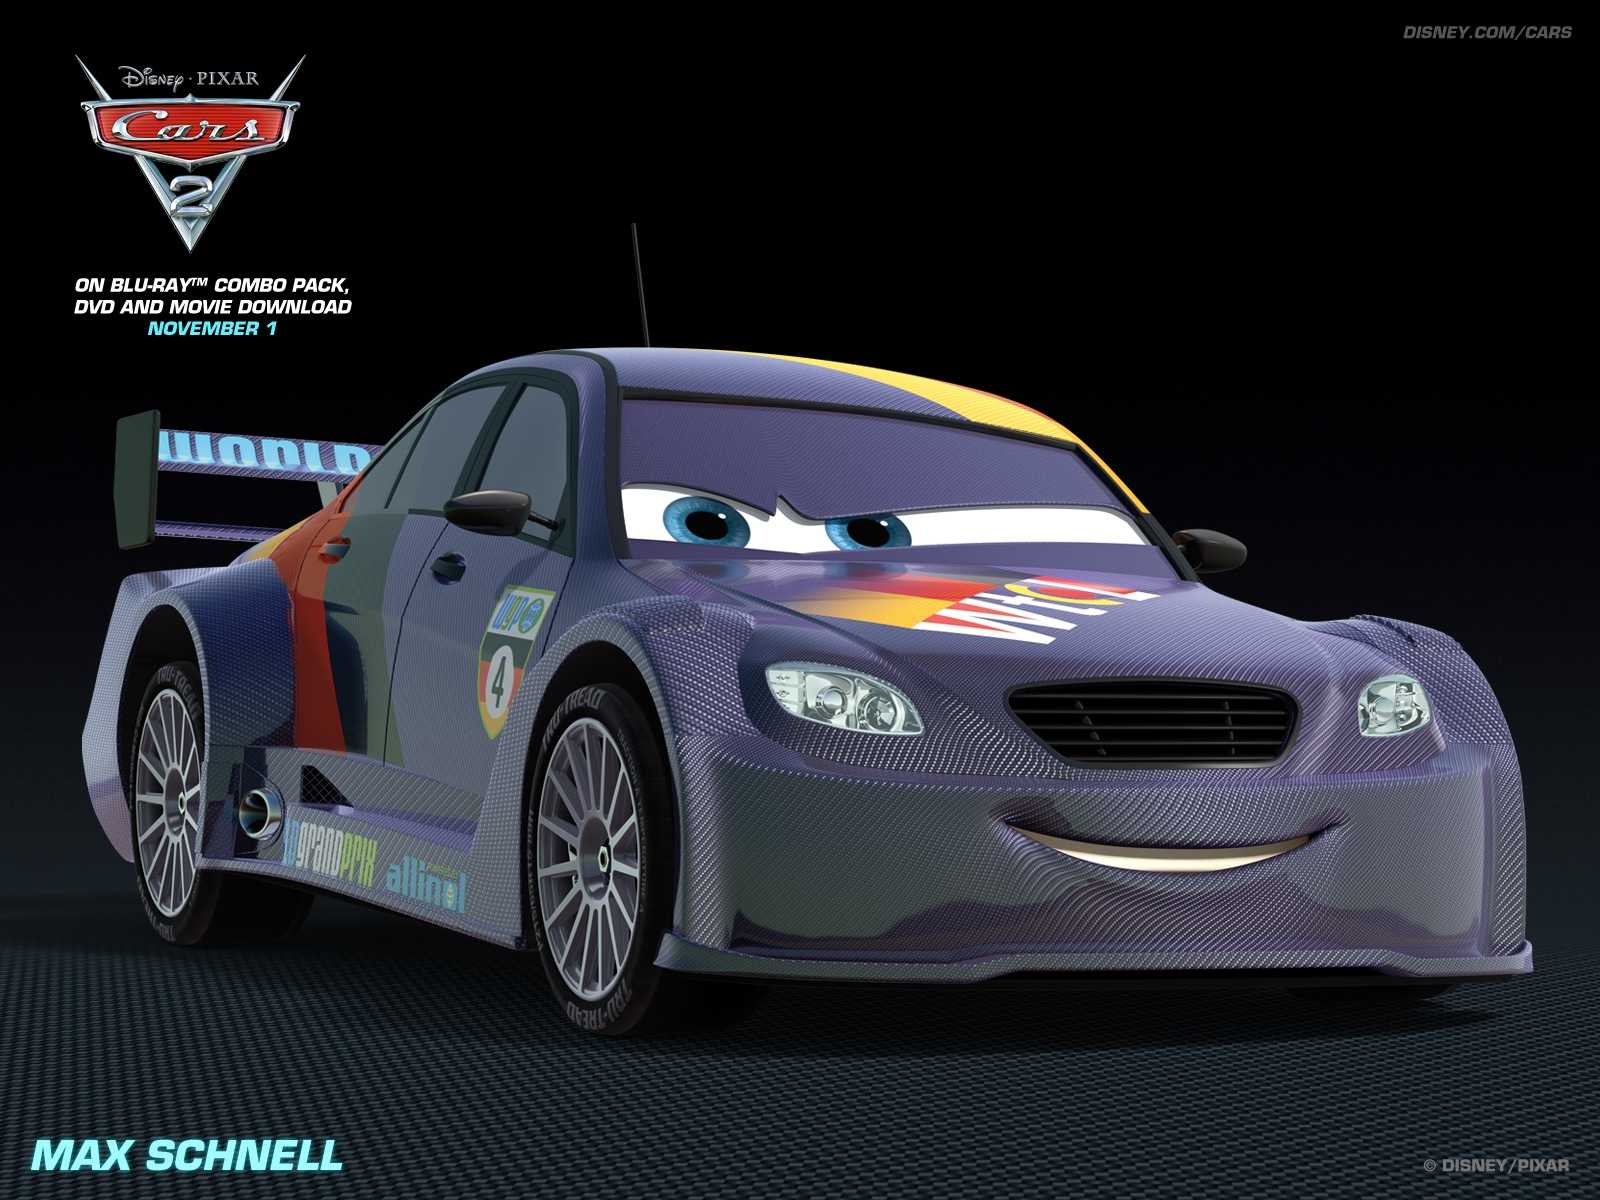 max schnell disney pixar cars 2 free hd wallpaper 1600 1200